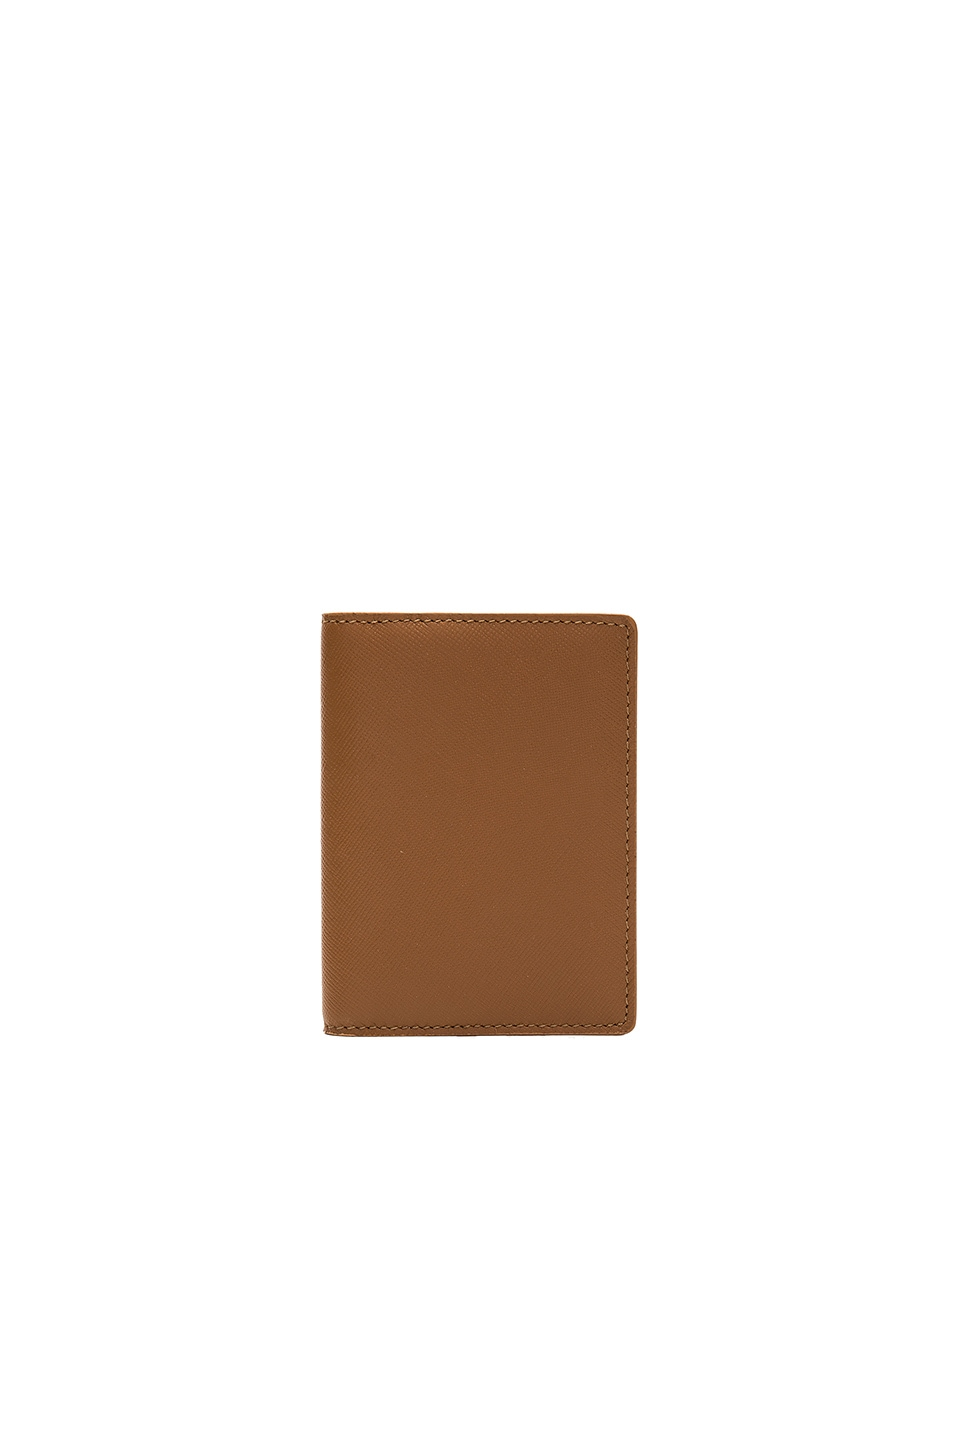 Cardholder Wallet by Common Projects